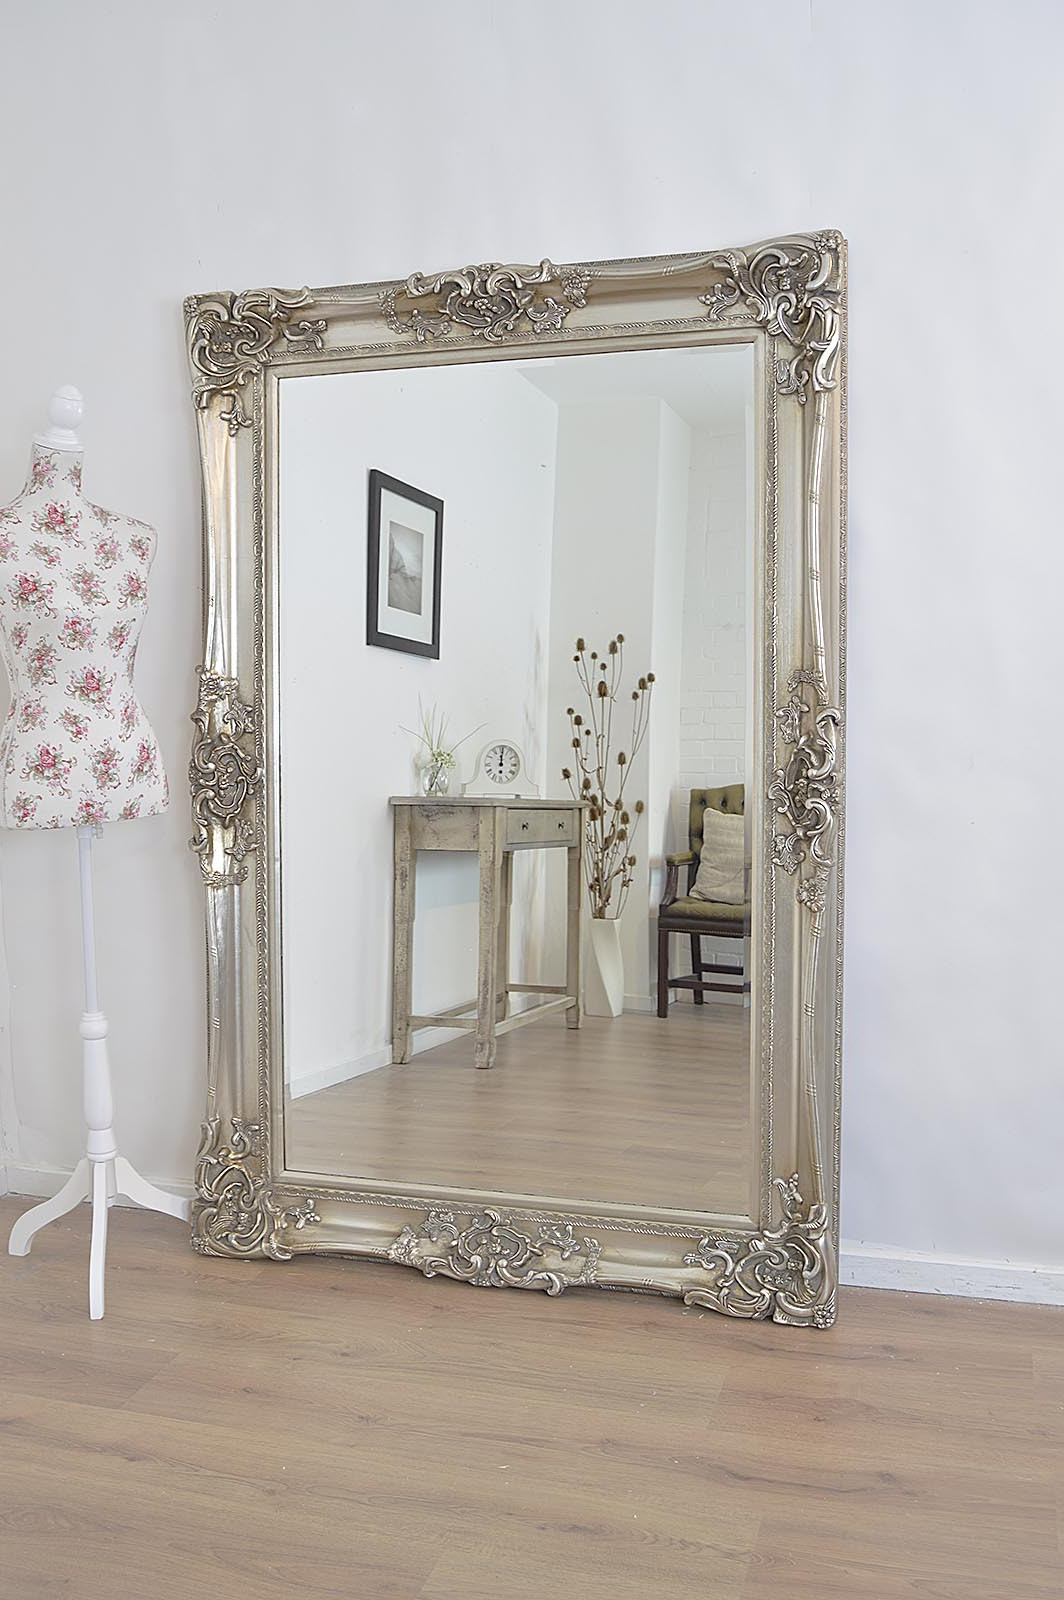 Antique Full Length Wall Mirrors Wood Framed Mirror Clip Art Regarding 2020 Antique Full Length Wall Mirrors (View 2 of 20)